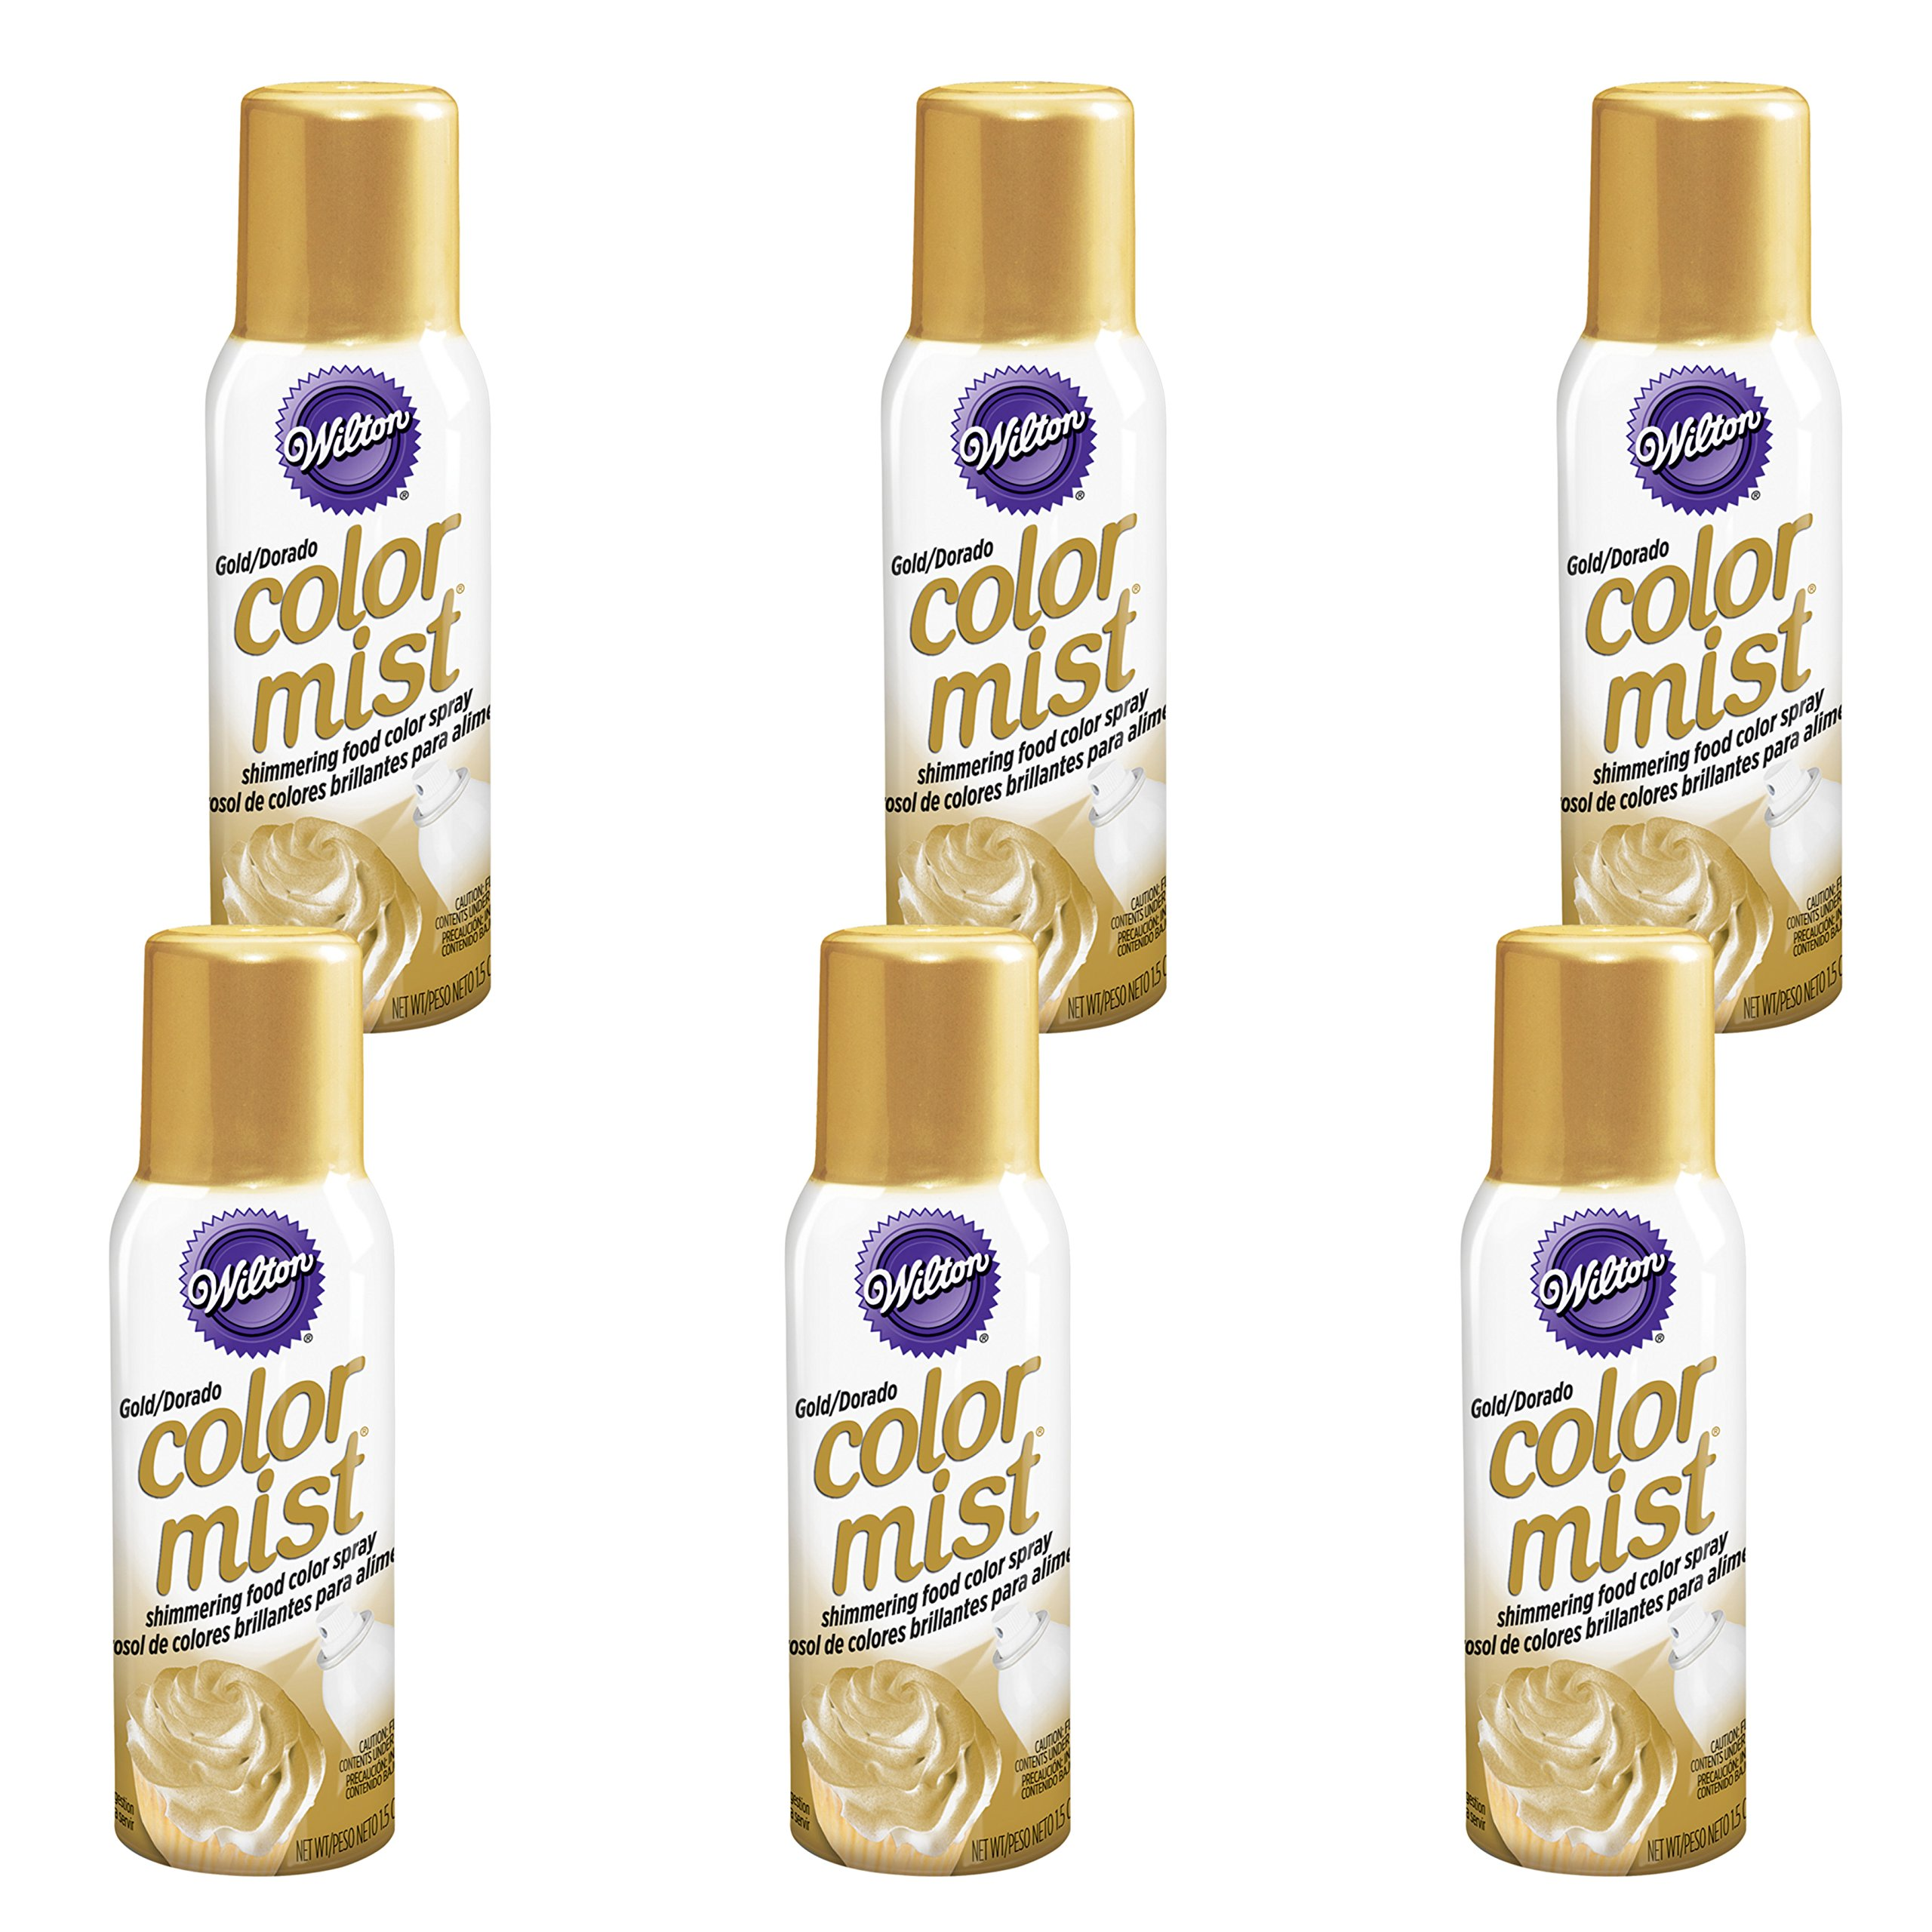 Wilton Gold Color Mist Shimmering Food Color Spray, Multipack of 6 by Wilton (Image #1)